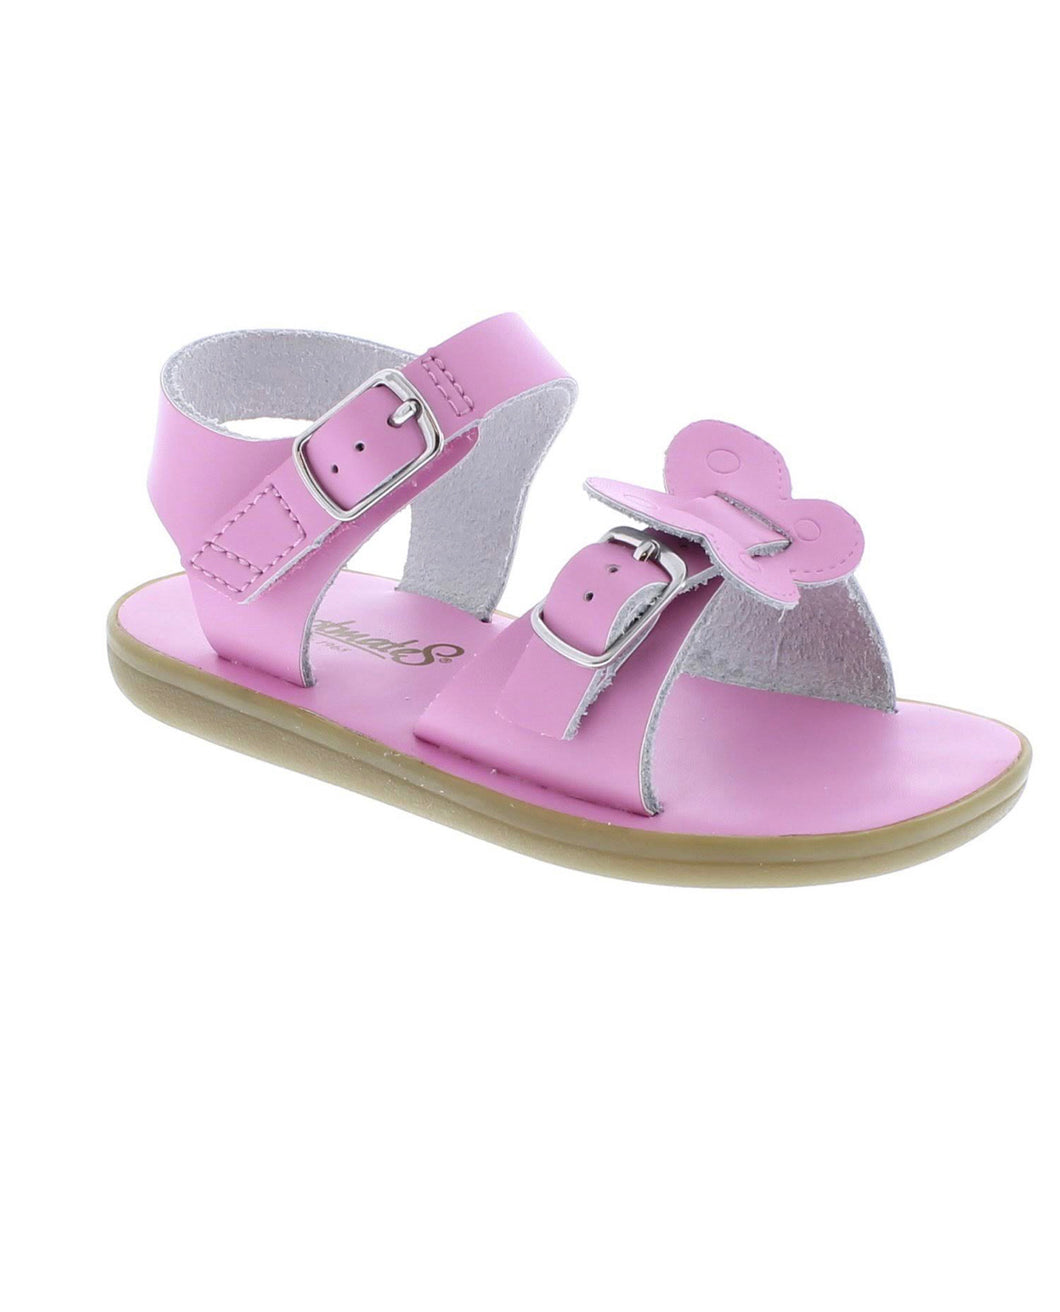 Footmates Monarch Bubblegum Sandal